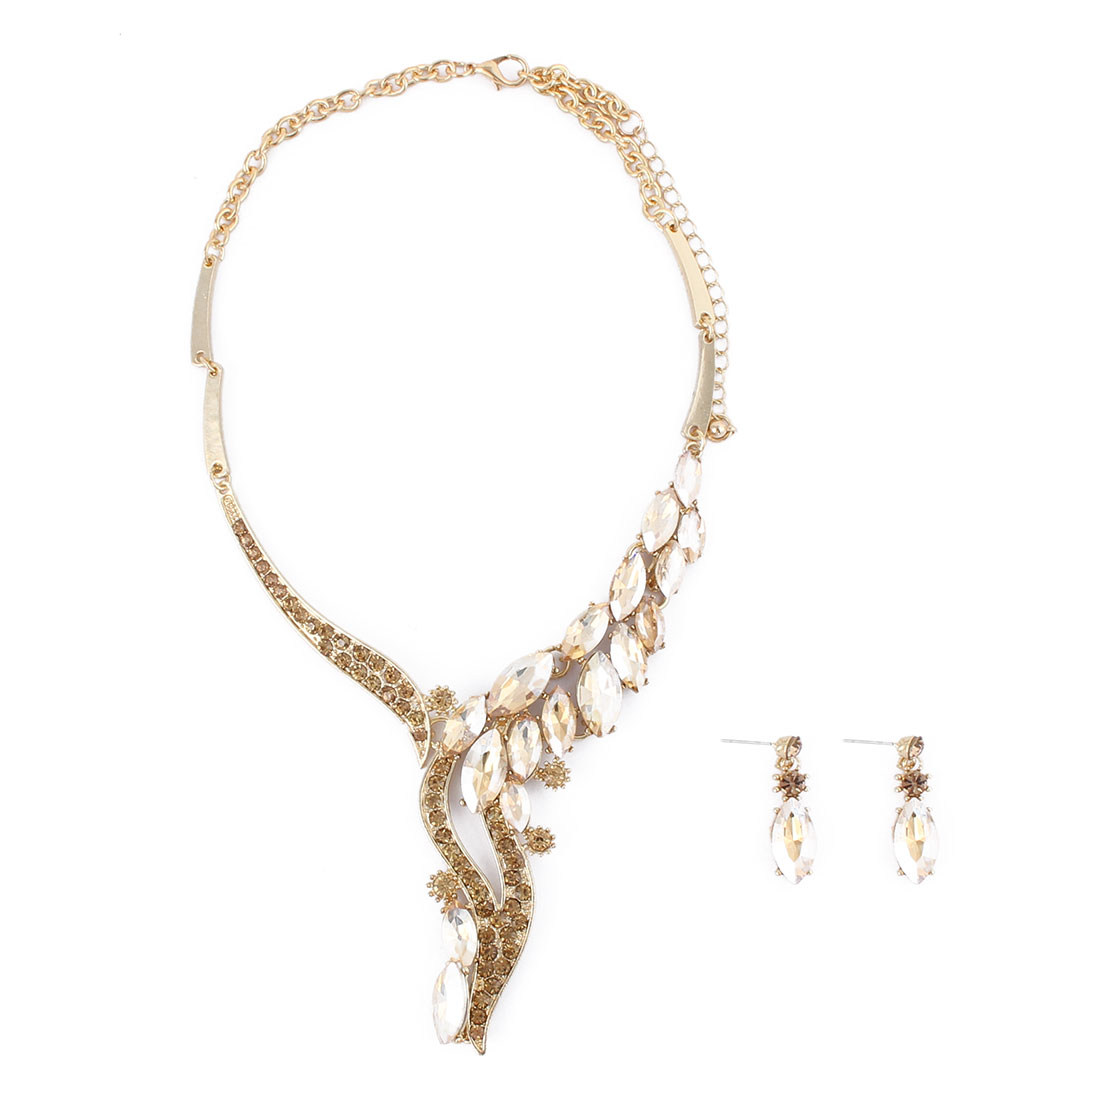 Ladies Metal Faux Rhinestone Inlaid Pendant Bib Collar Charming Necklace Earrings Gold Tone Set